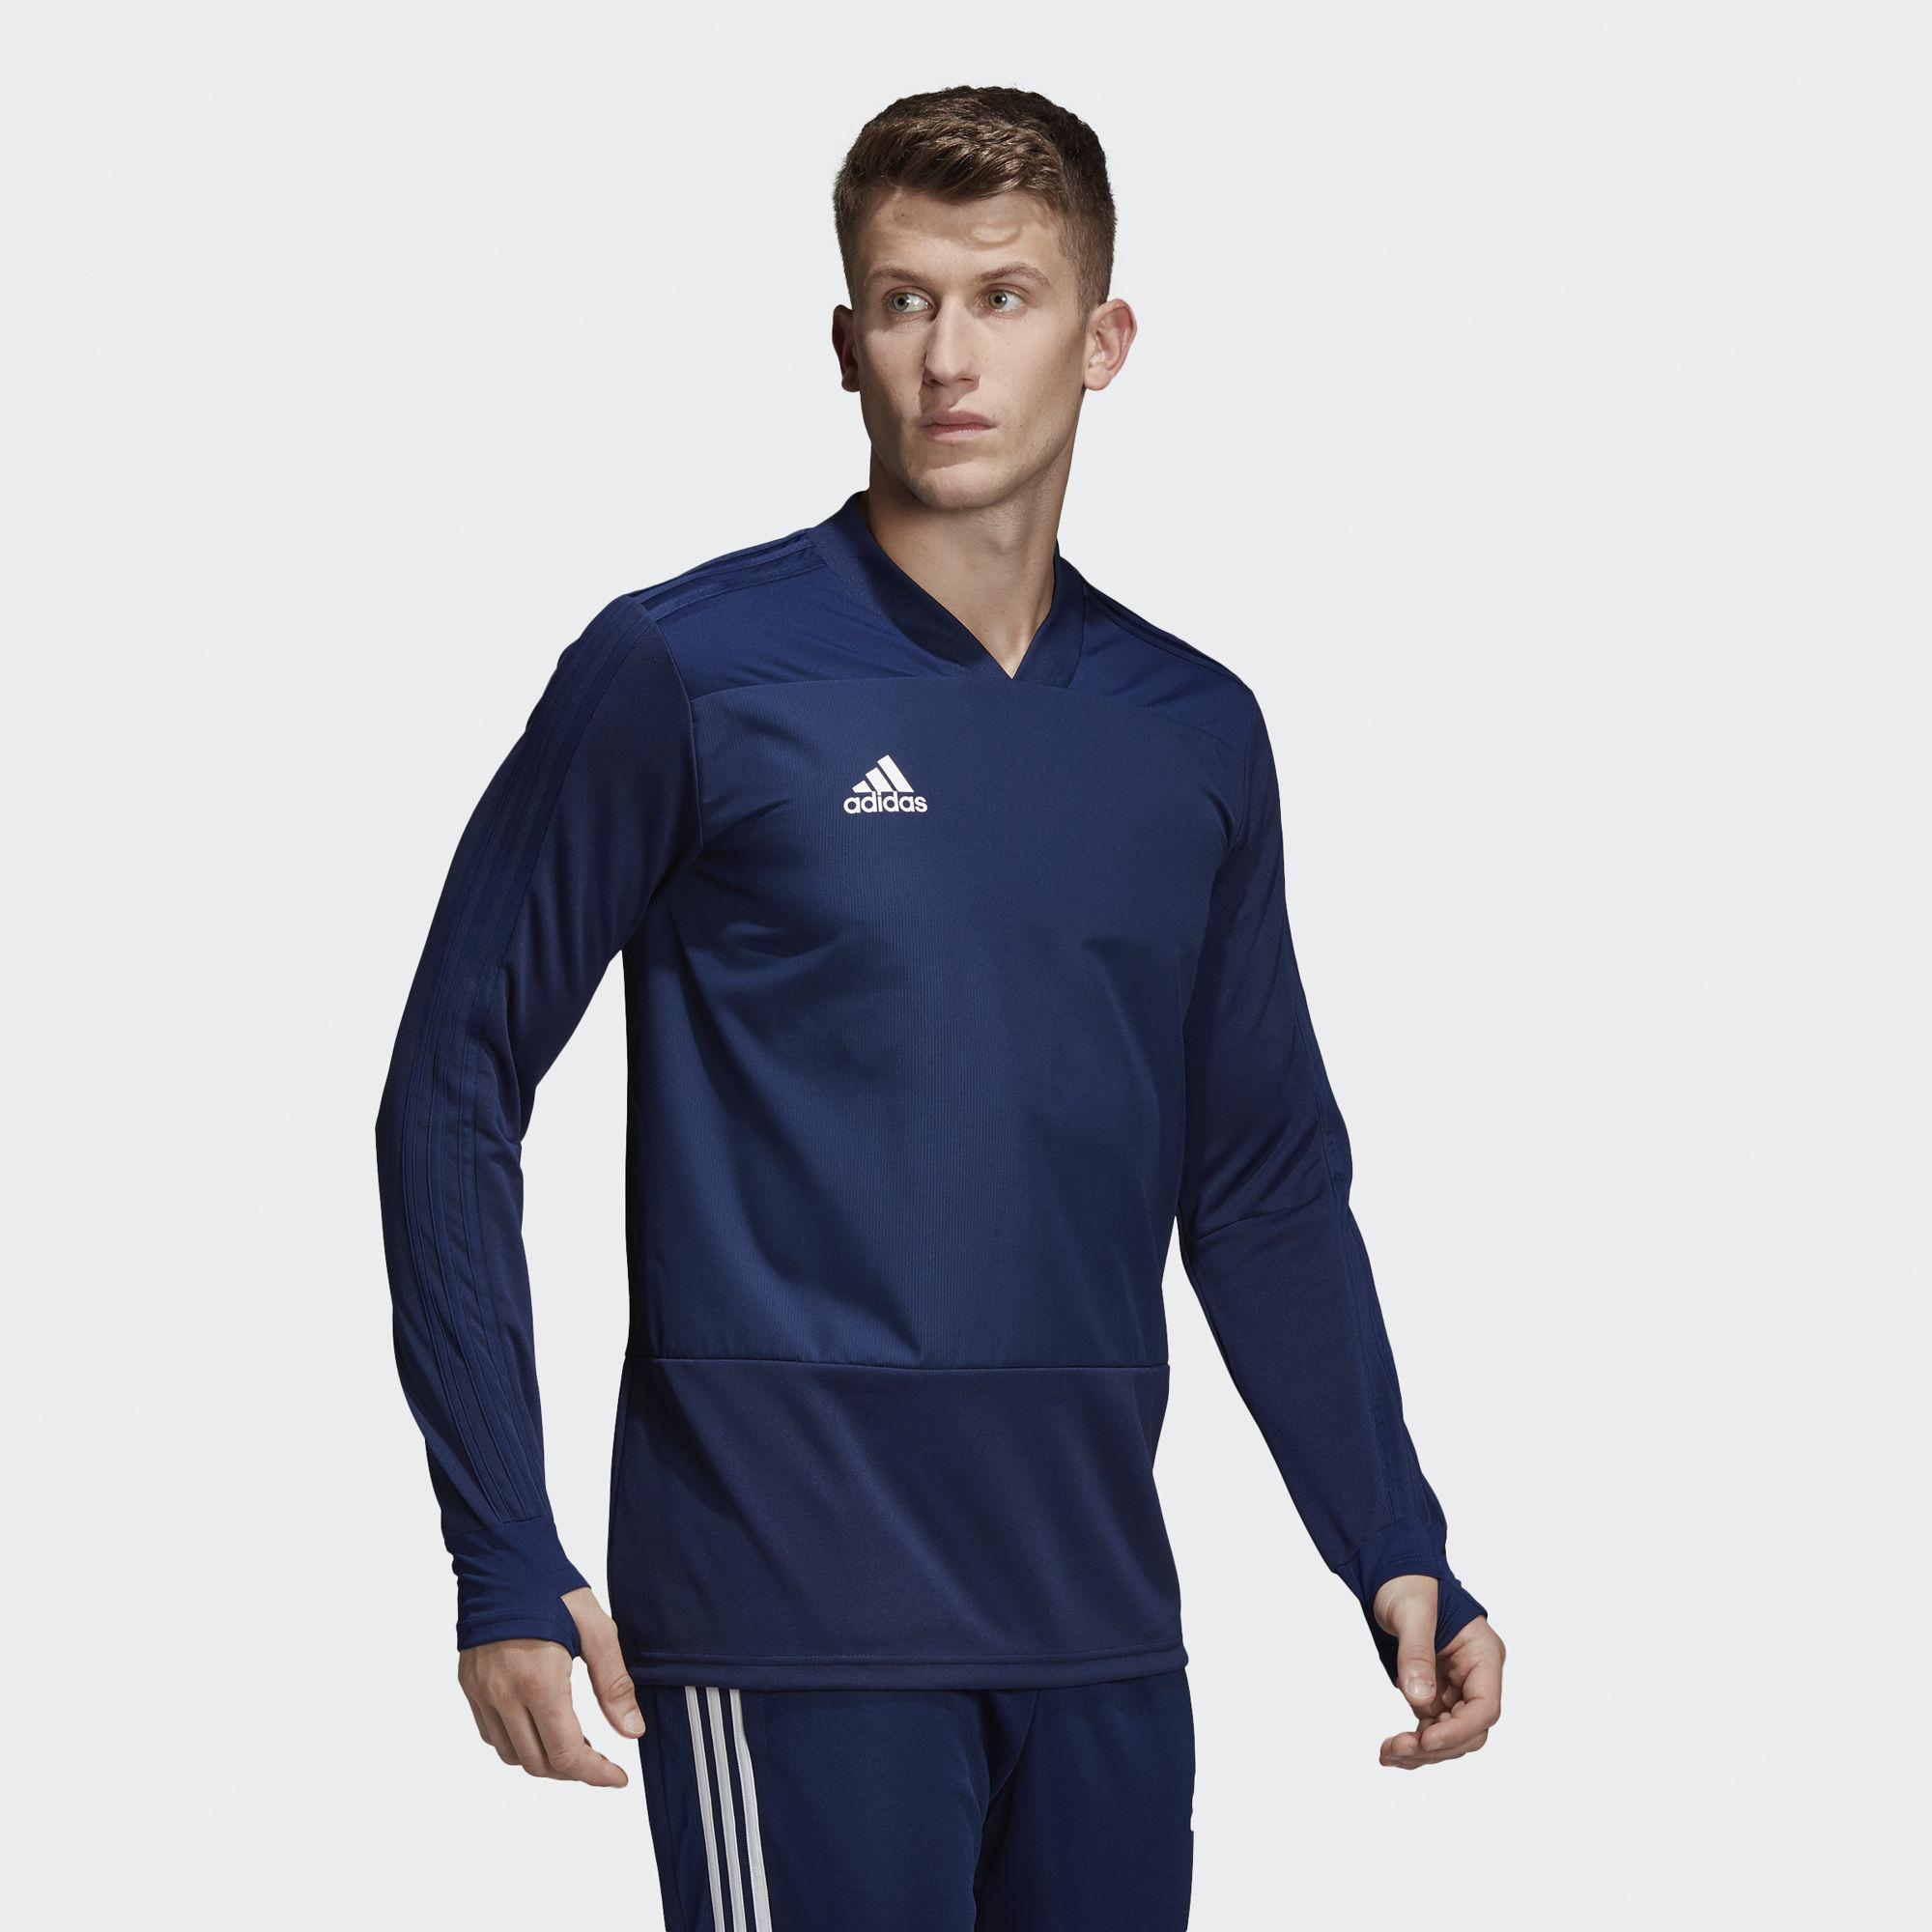 b4a22d053 Adidas - Blue Condivo 18 Player Focus Training Top for Men - Lyst. View  fullscreen